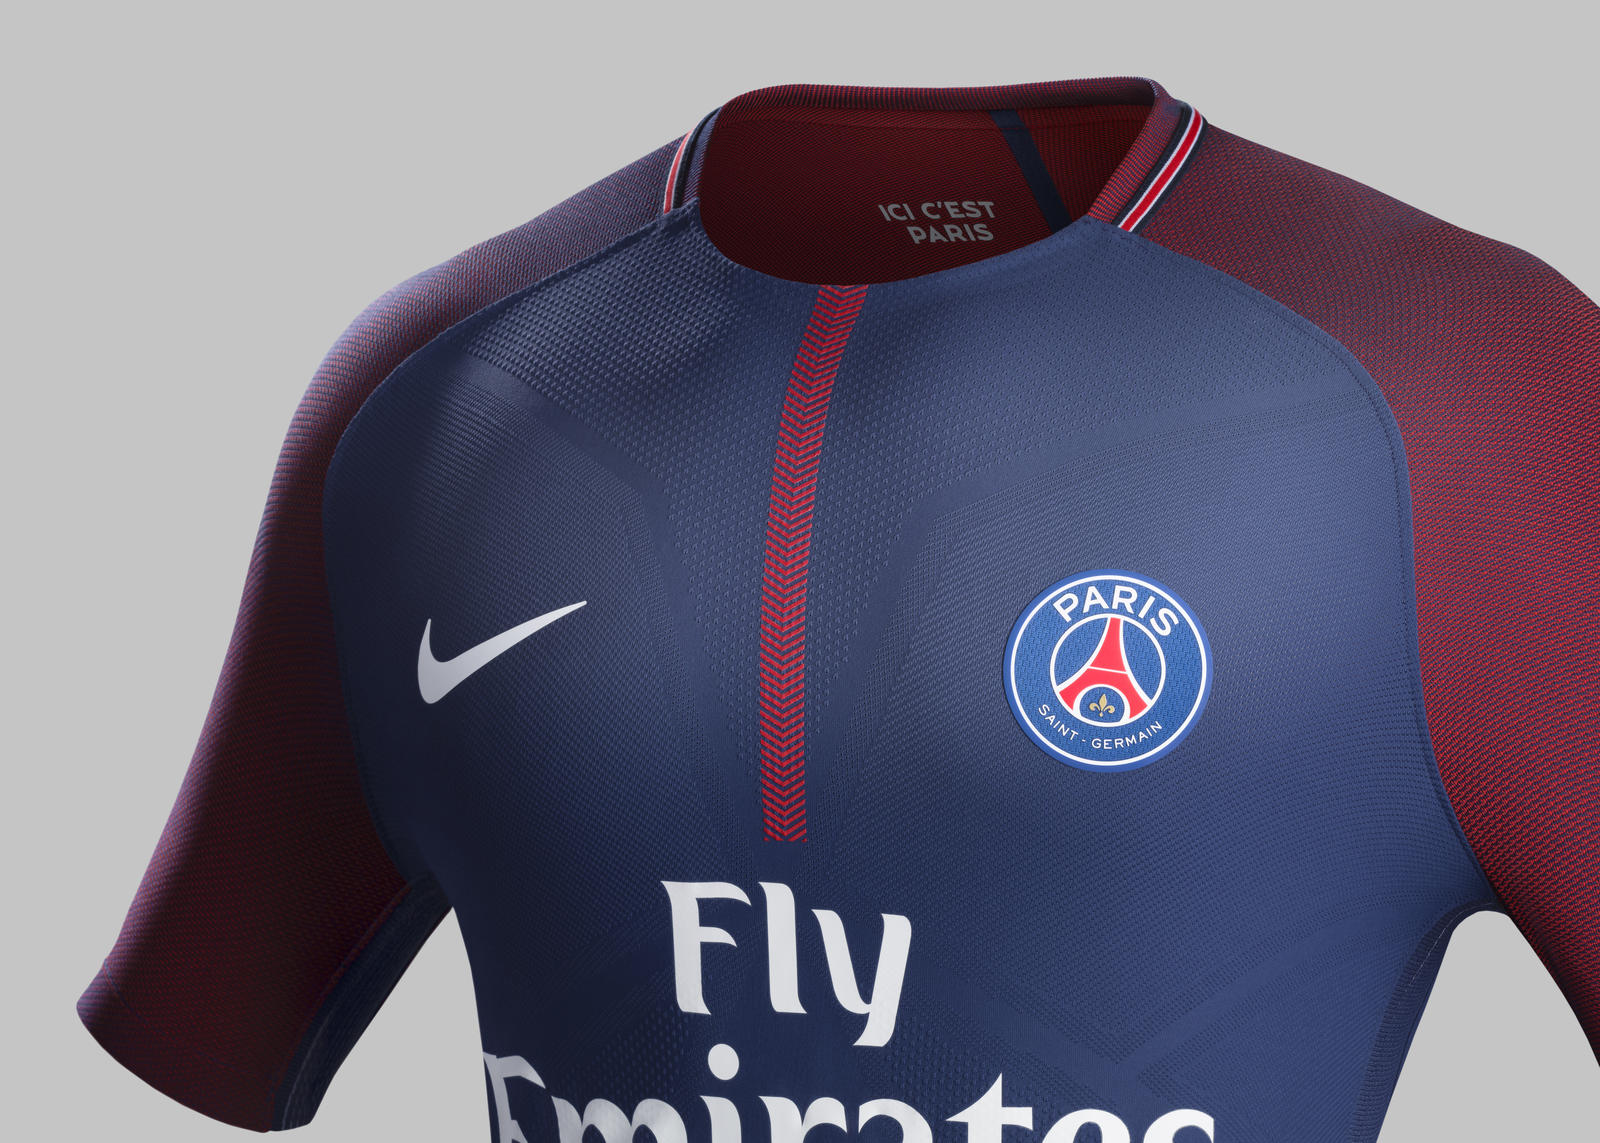 Fy17 18 club kits h crest match psg r rectangle 1600